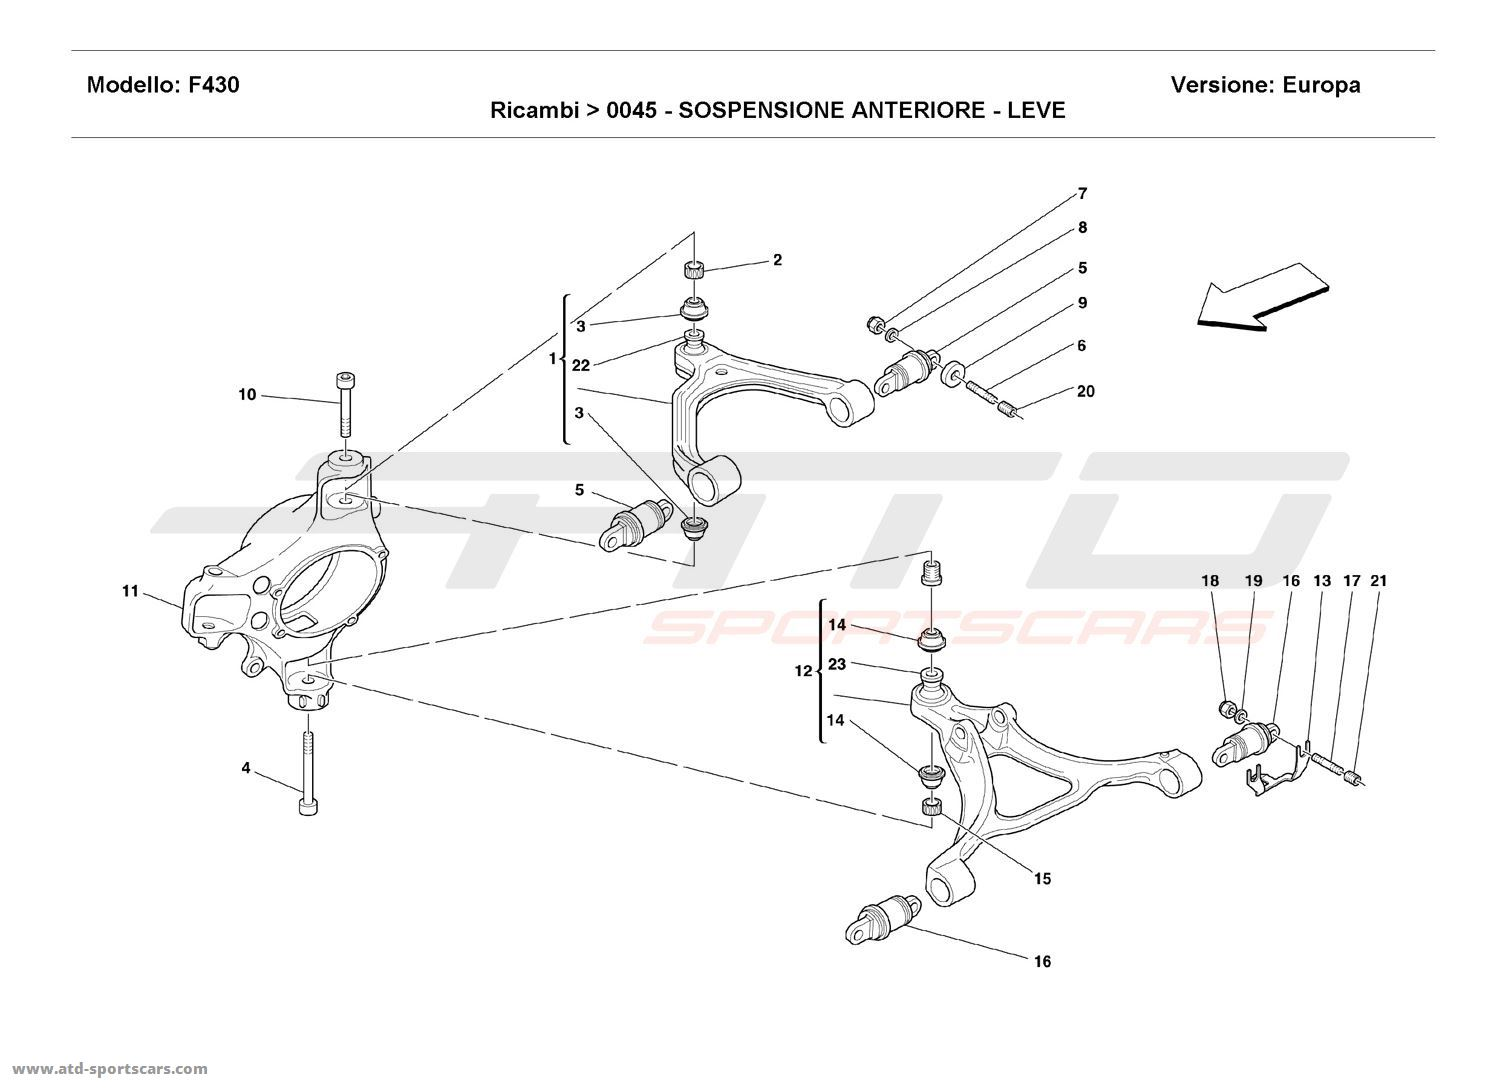 FRONT SUSPENSION - WISHBONES